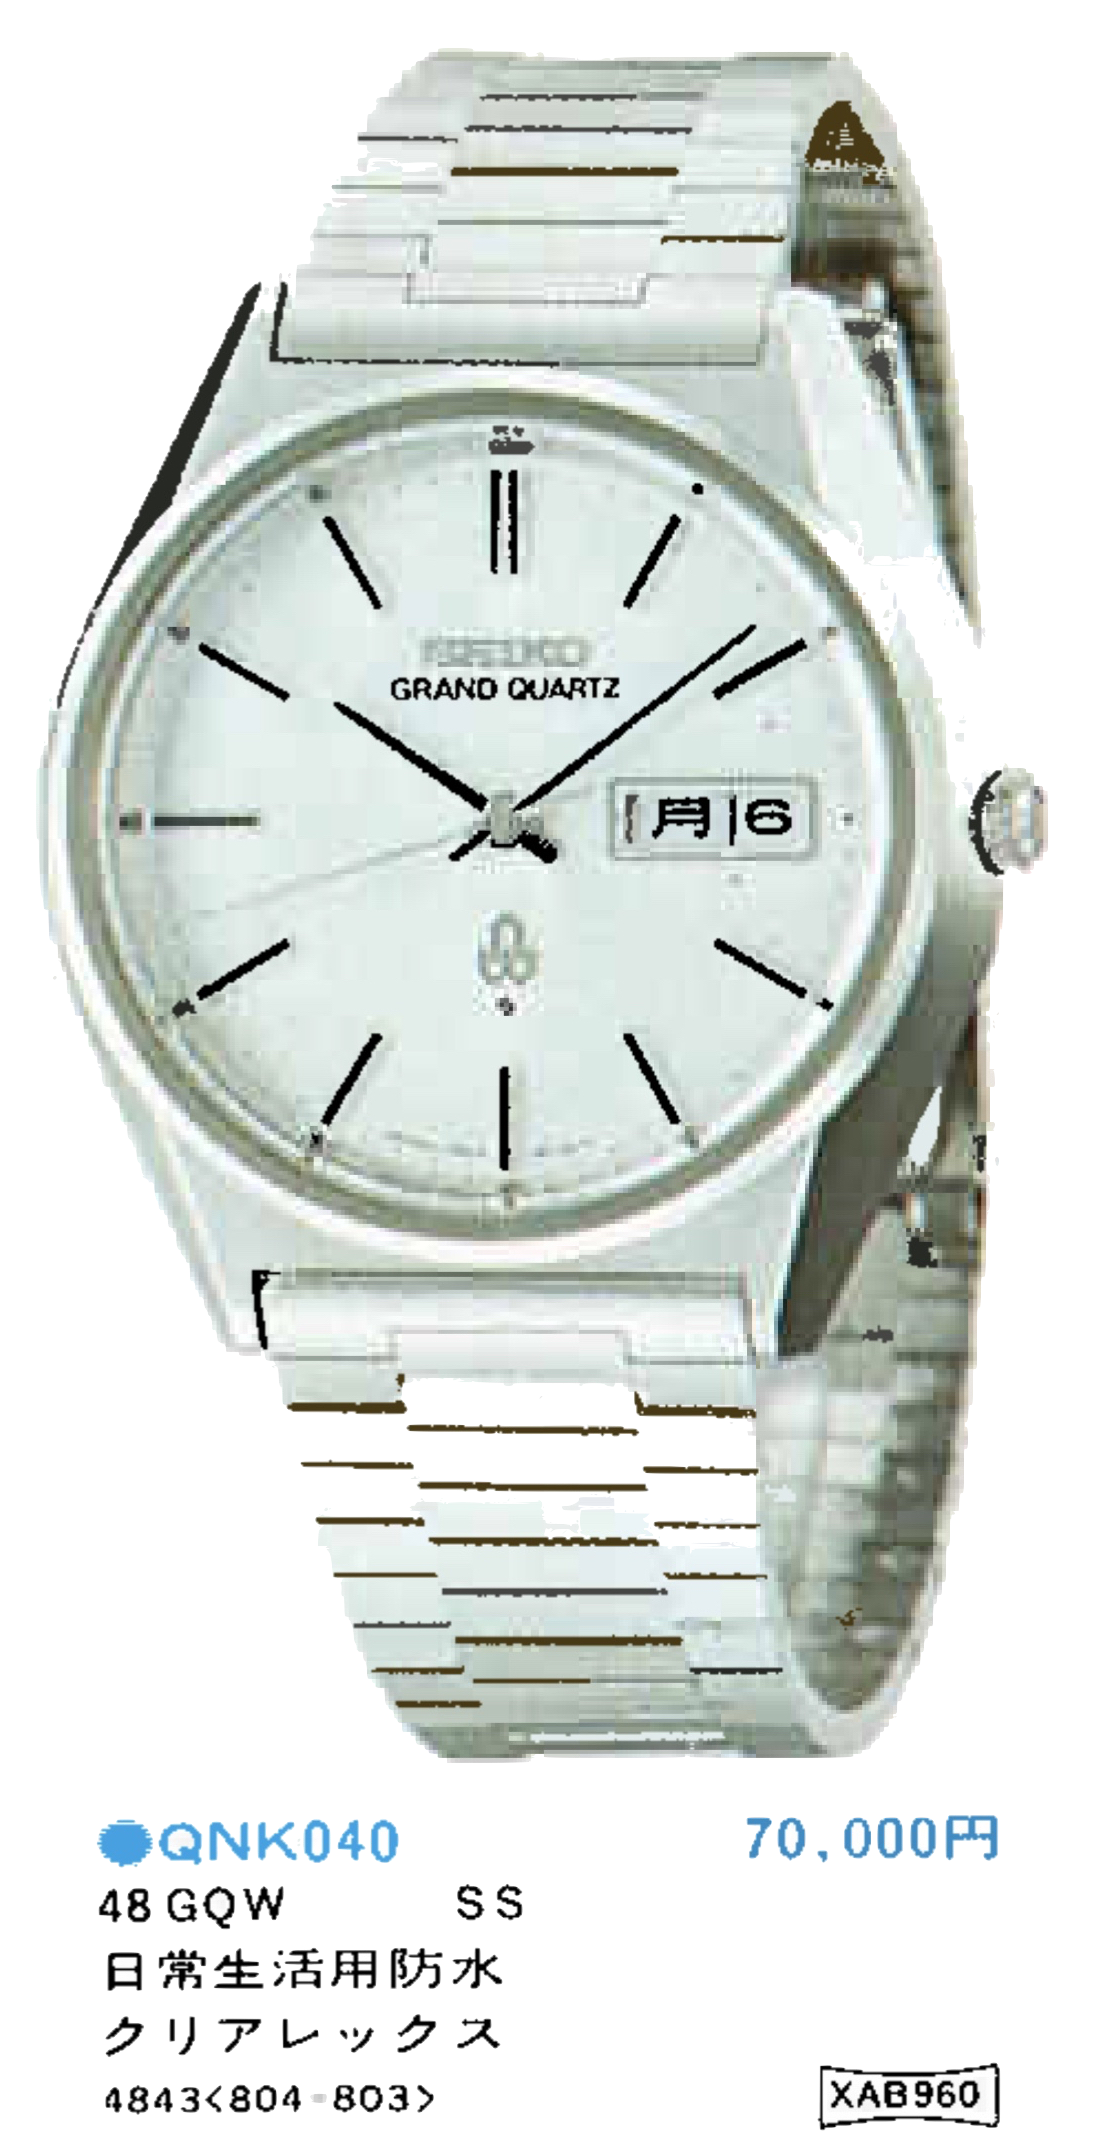 Seiko Grand Quartz 4843-8041 (Sold)